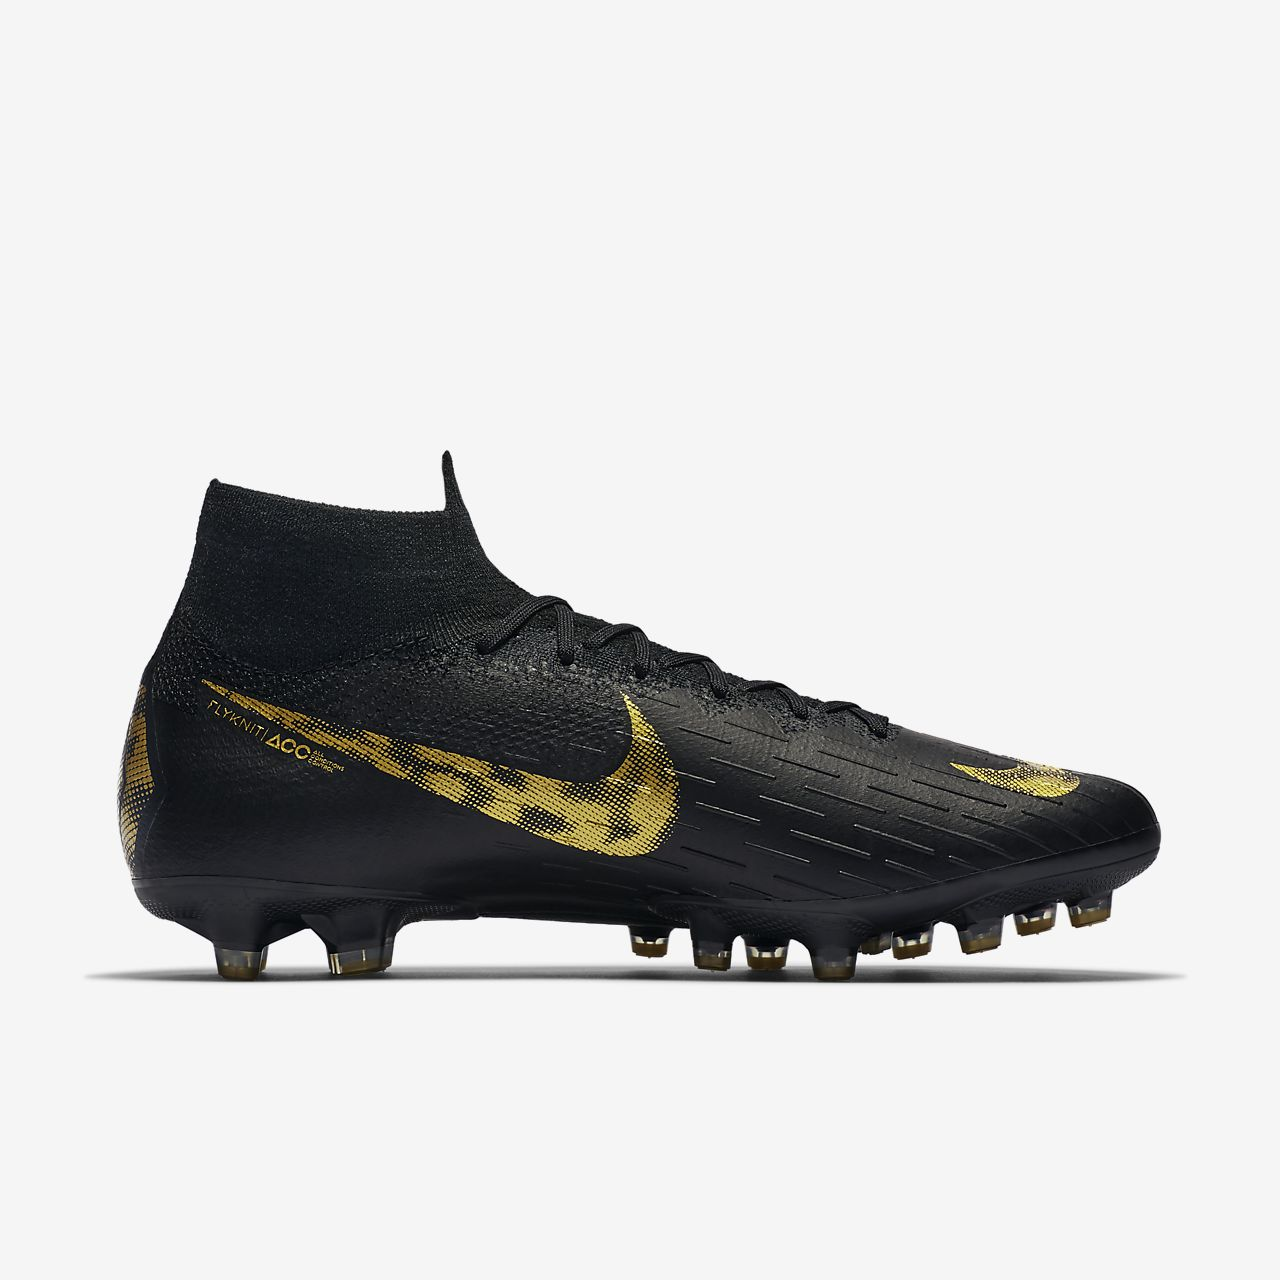 81d36cd62899 ... Nike Mercurial Superfly 360 Elite AG-PRO Artificial-Grass Football Boot